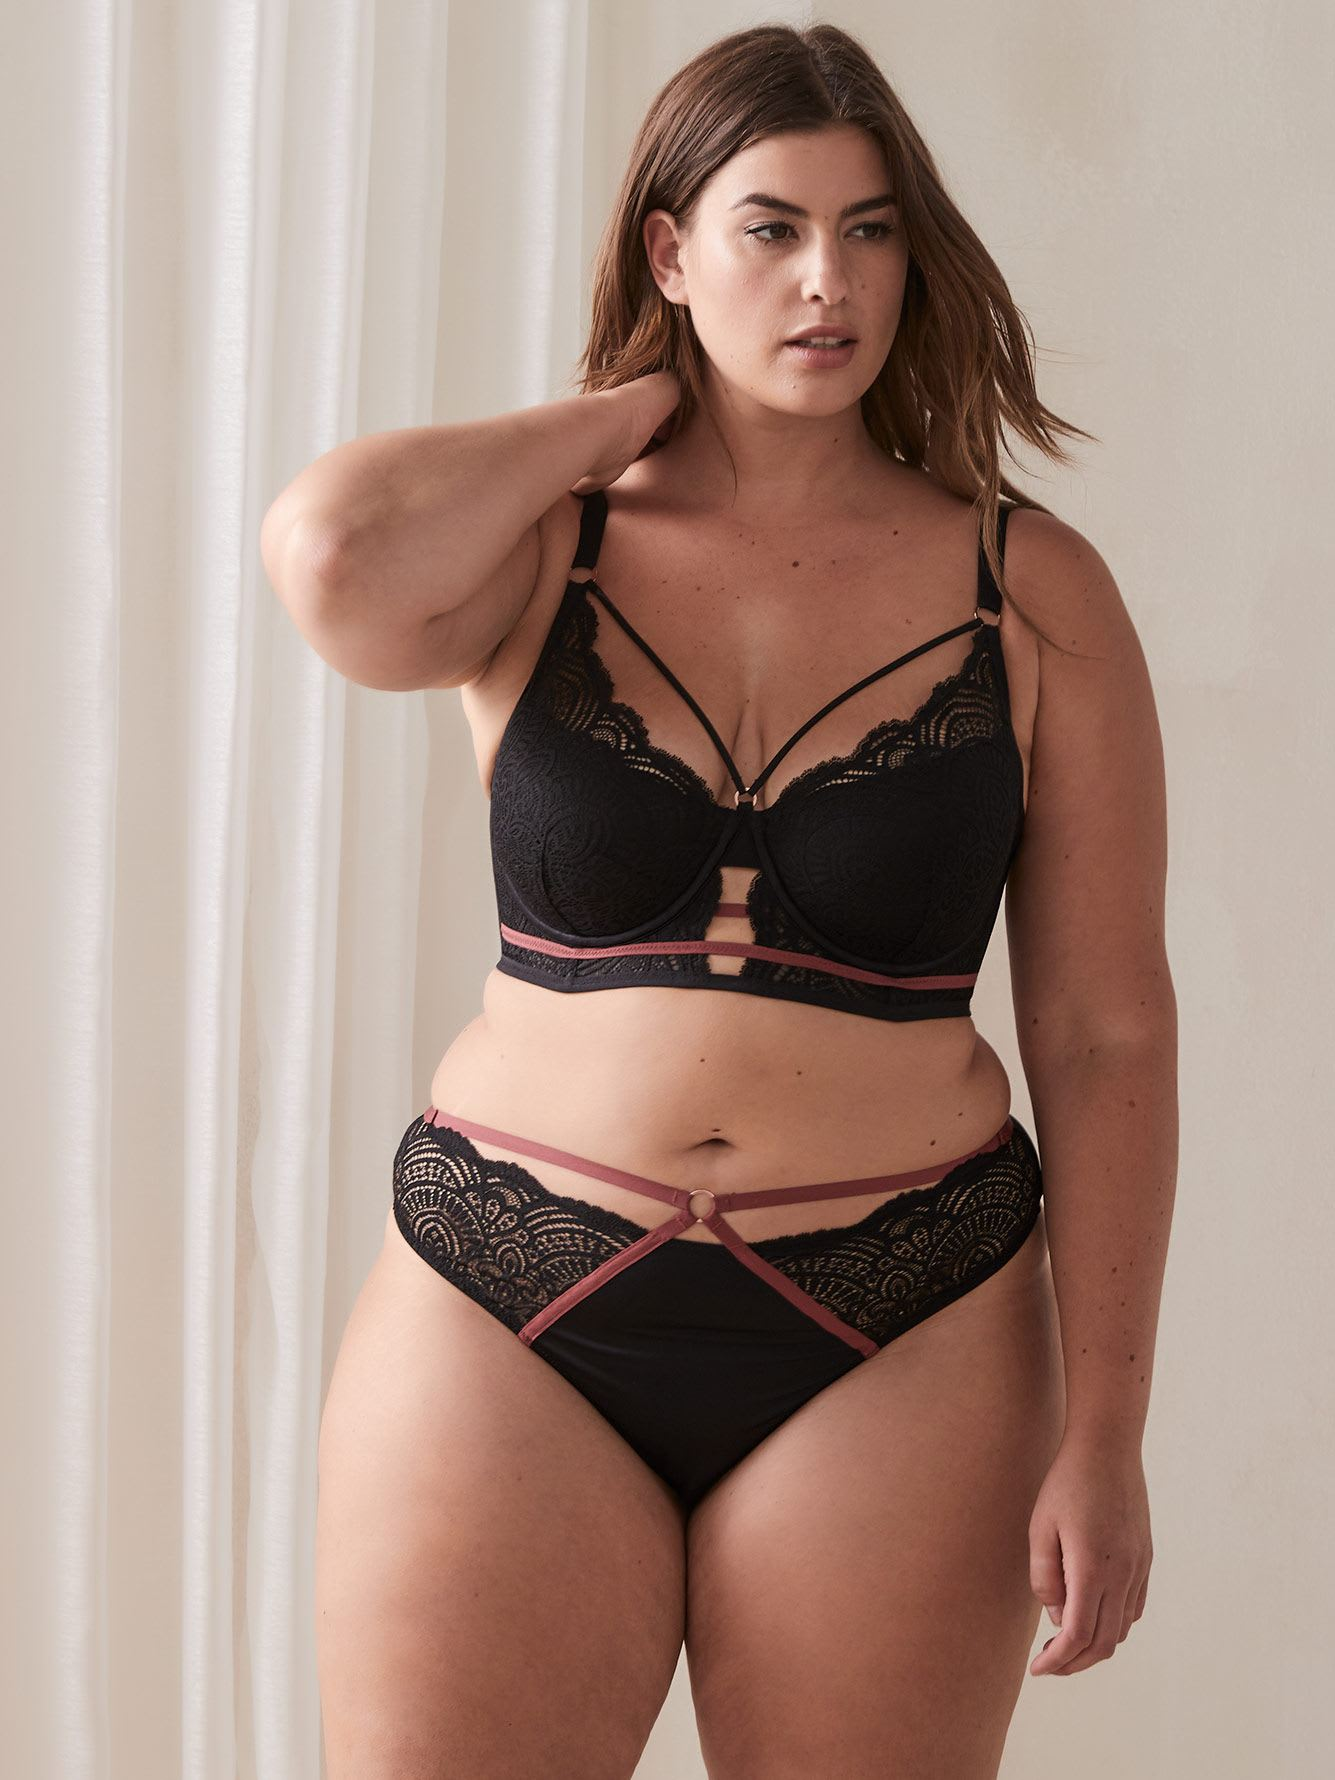 Ashley Graham - Soutien-gorge bustier Diva à demi bonnets, bonnets G et H